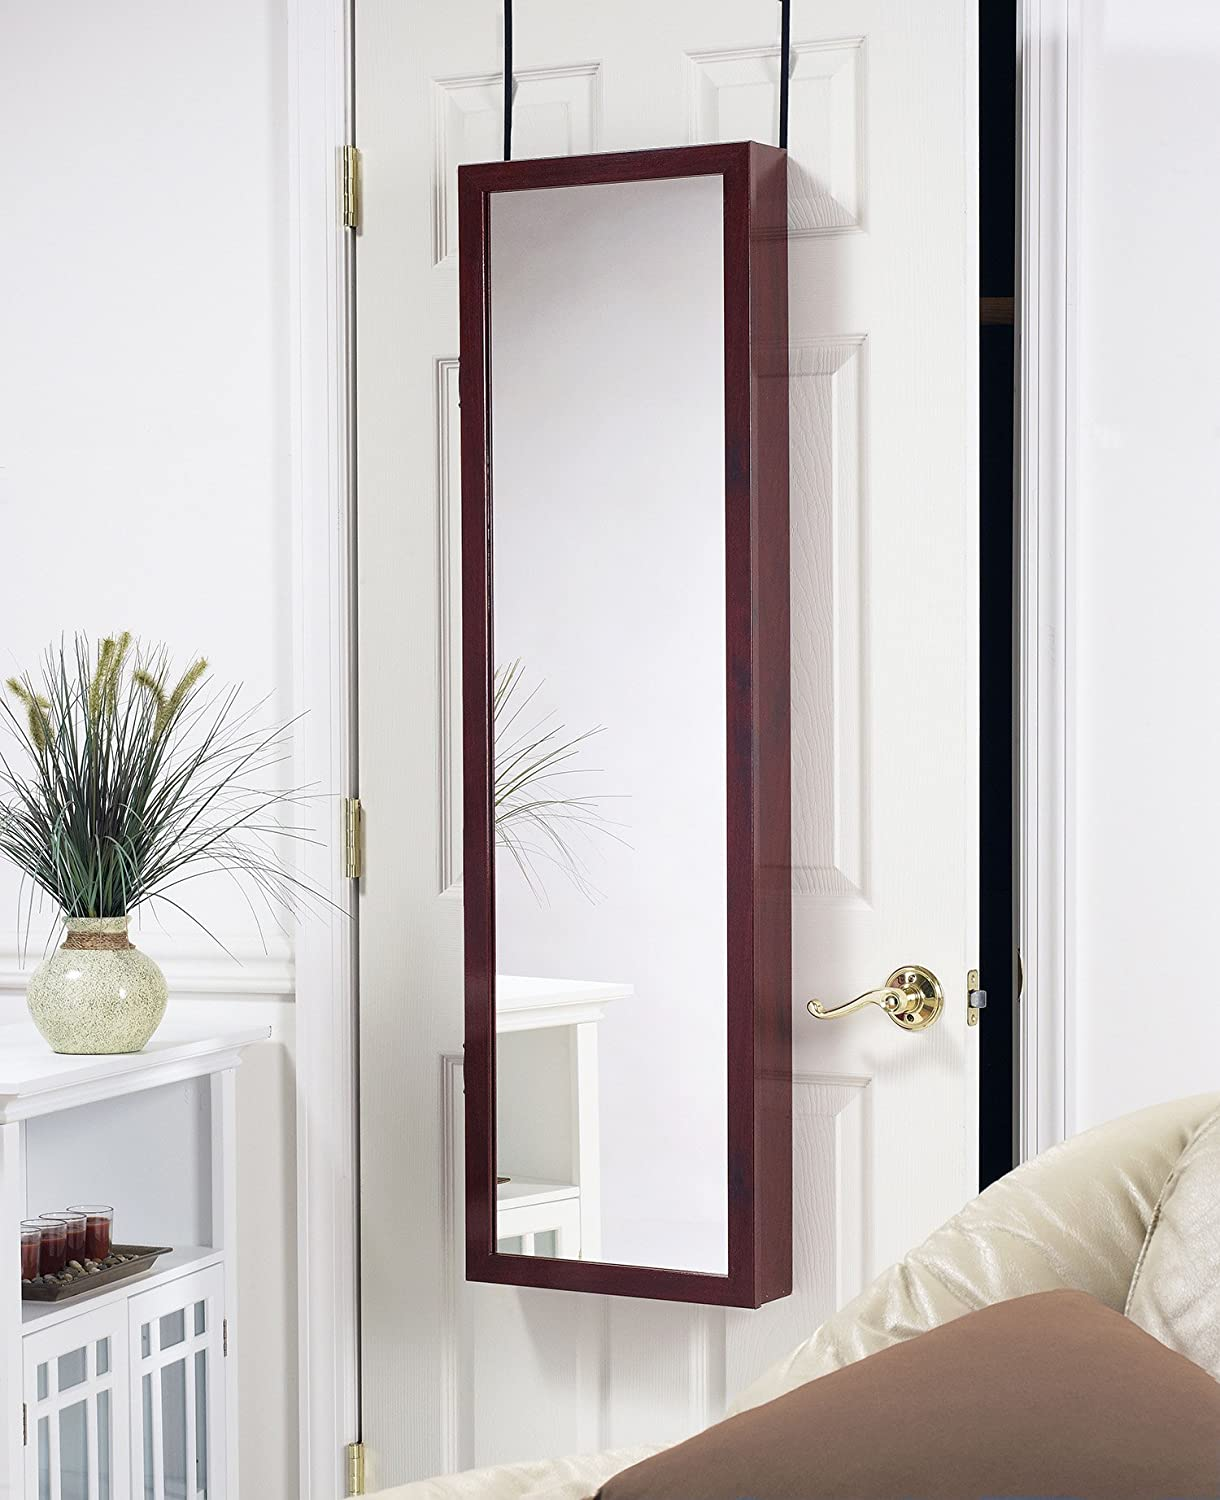 Amazon plaza astoria over the doorwall mount jewelry armoire amazon plaza astoria over the doorwall mount jewelry armoire with full length mirror lined storage interior vanity mirror cherry home kitchen eventelaan Gallery